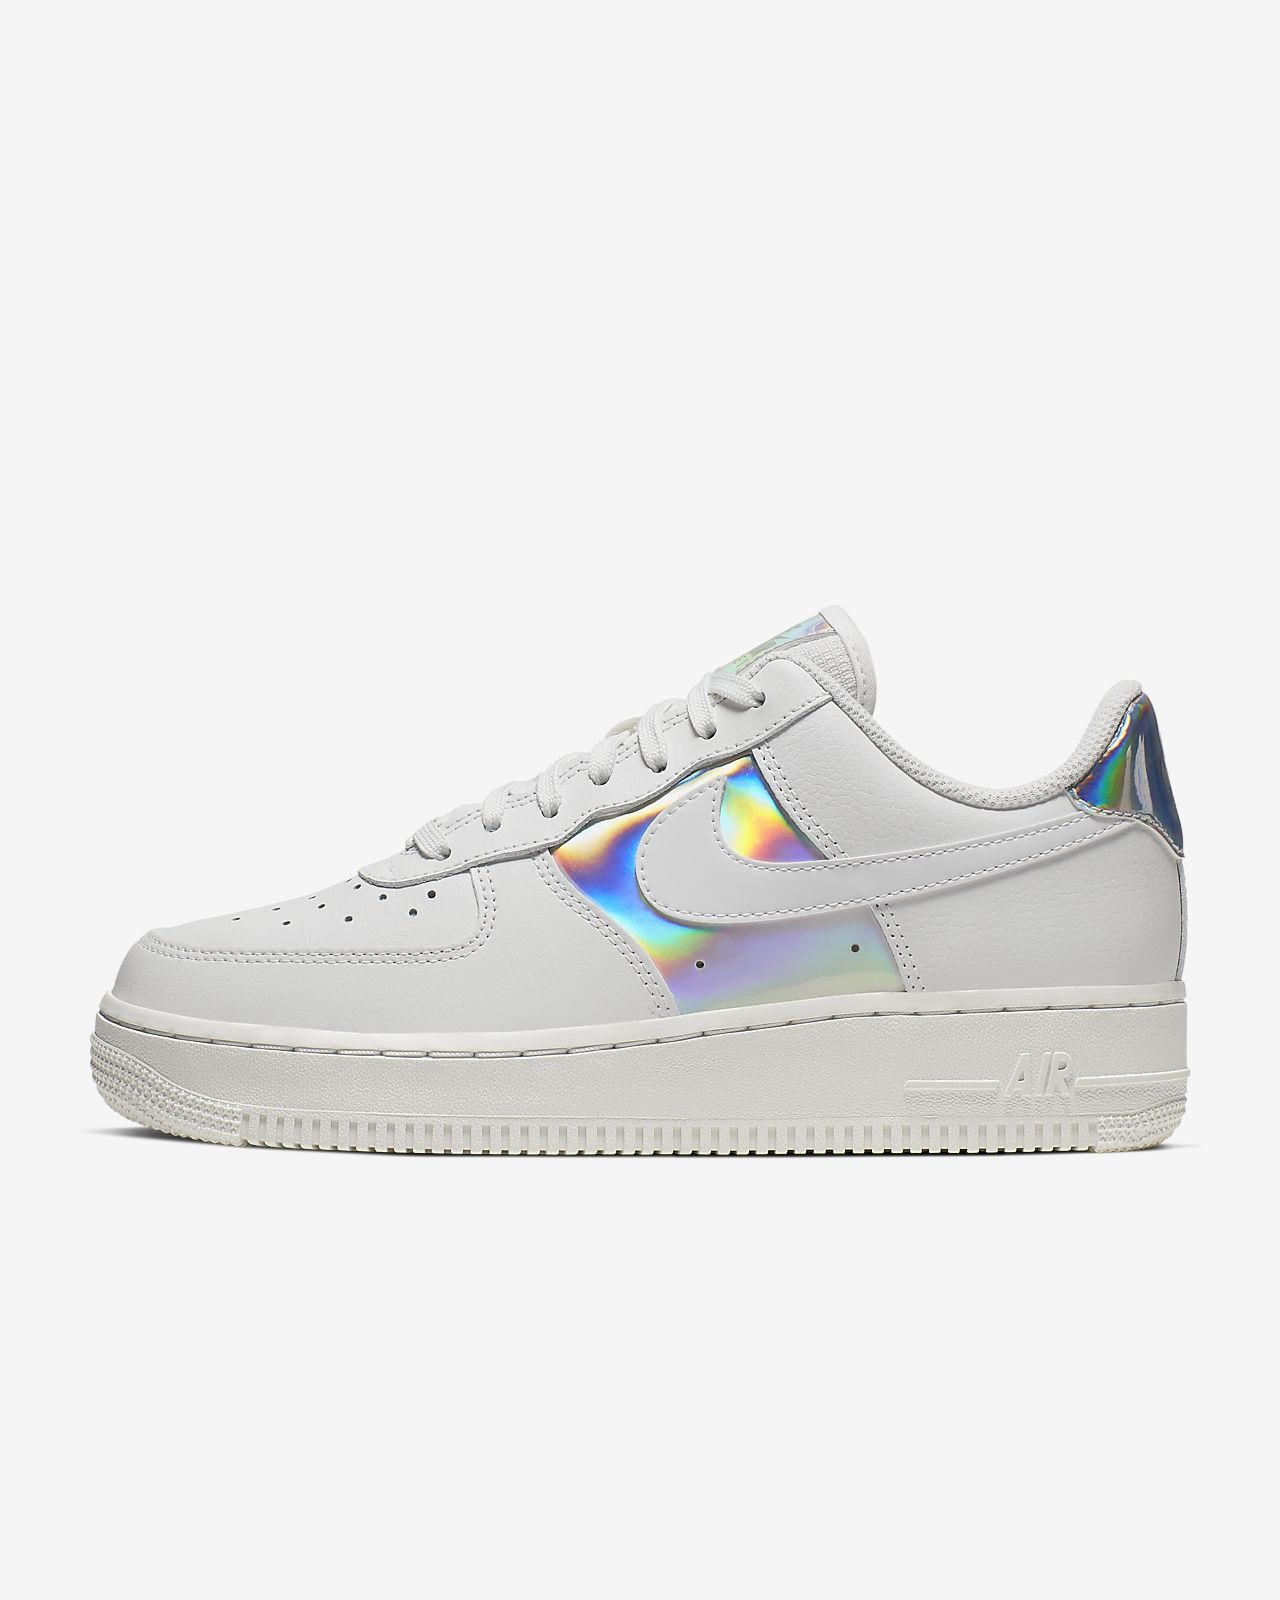 new style f7c69 a582e Nike Air Force 1 Low Women's Iridescent Shoe